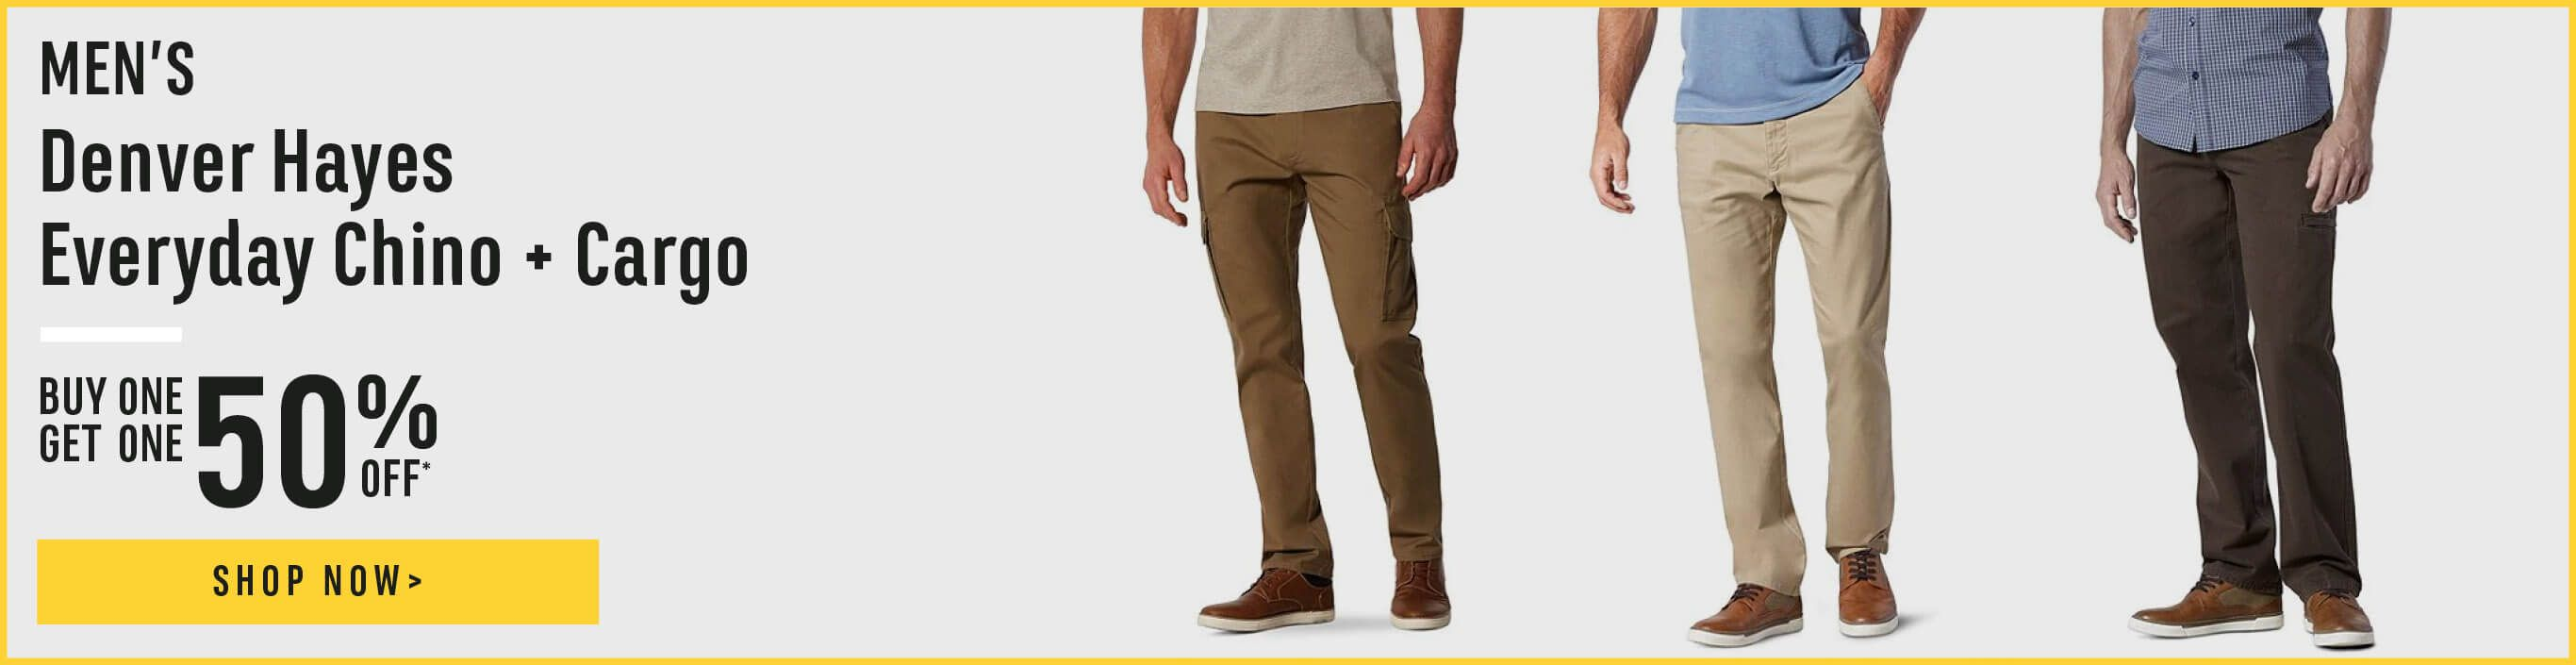 Men's Denver Hayes Everyday Chino and Cargo Pants. Buy One Get One 50% Off.